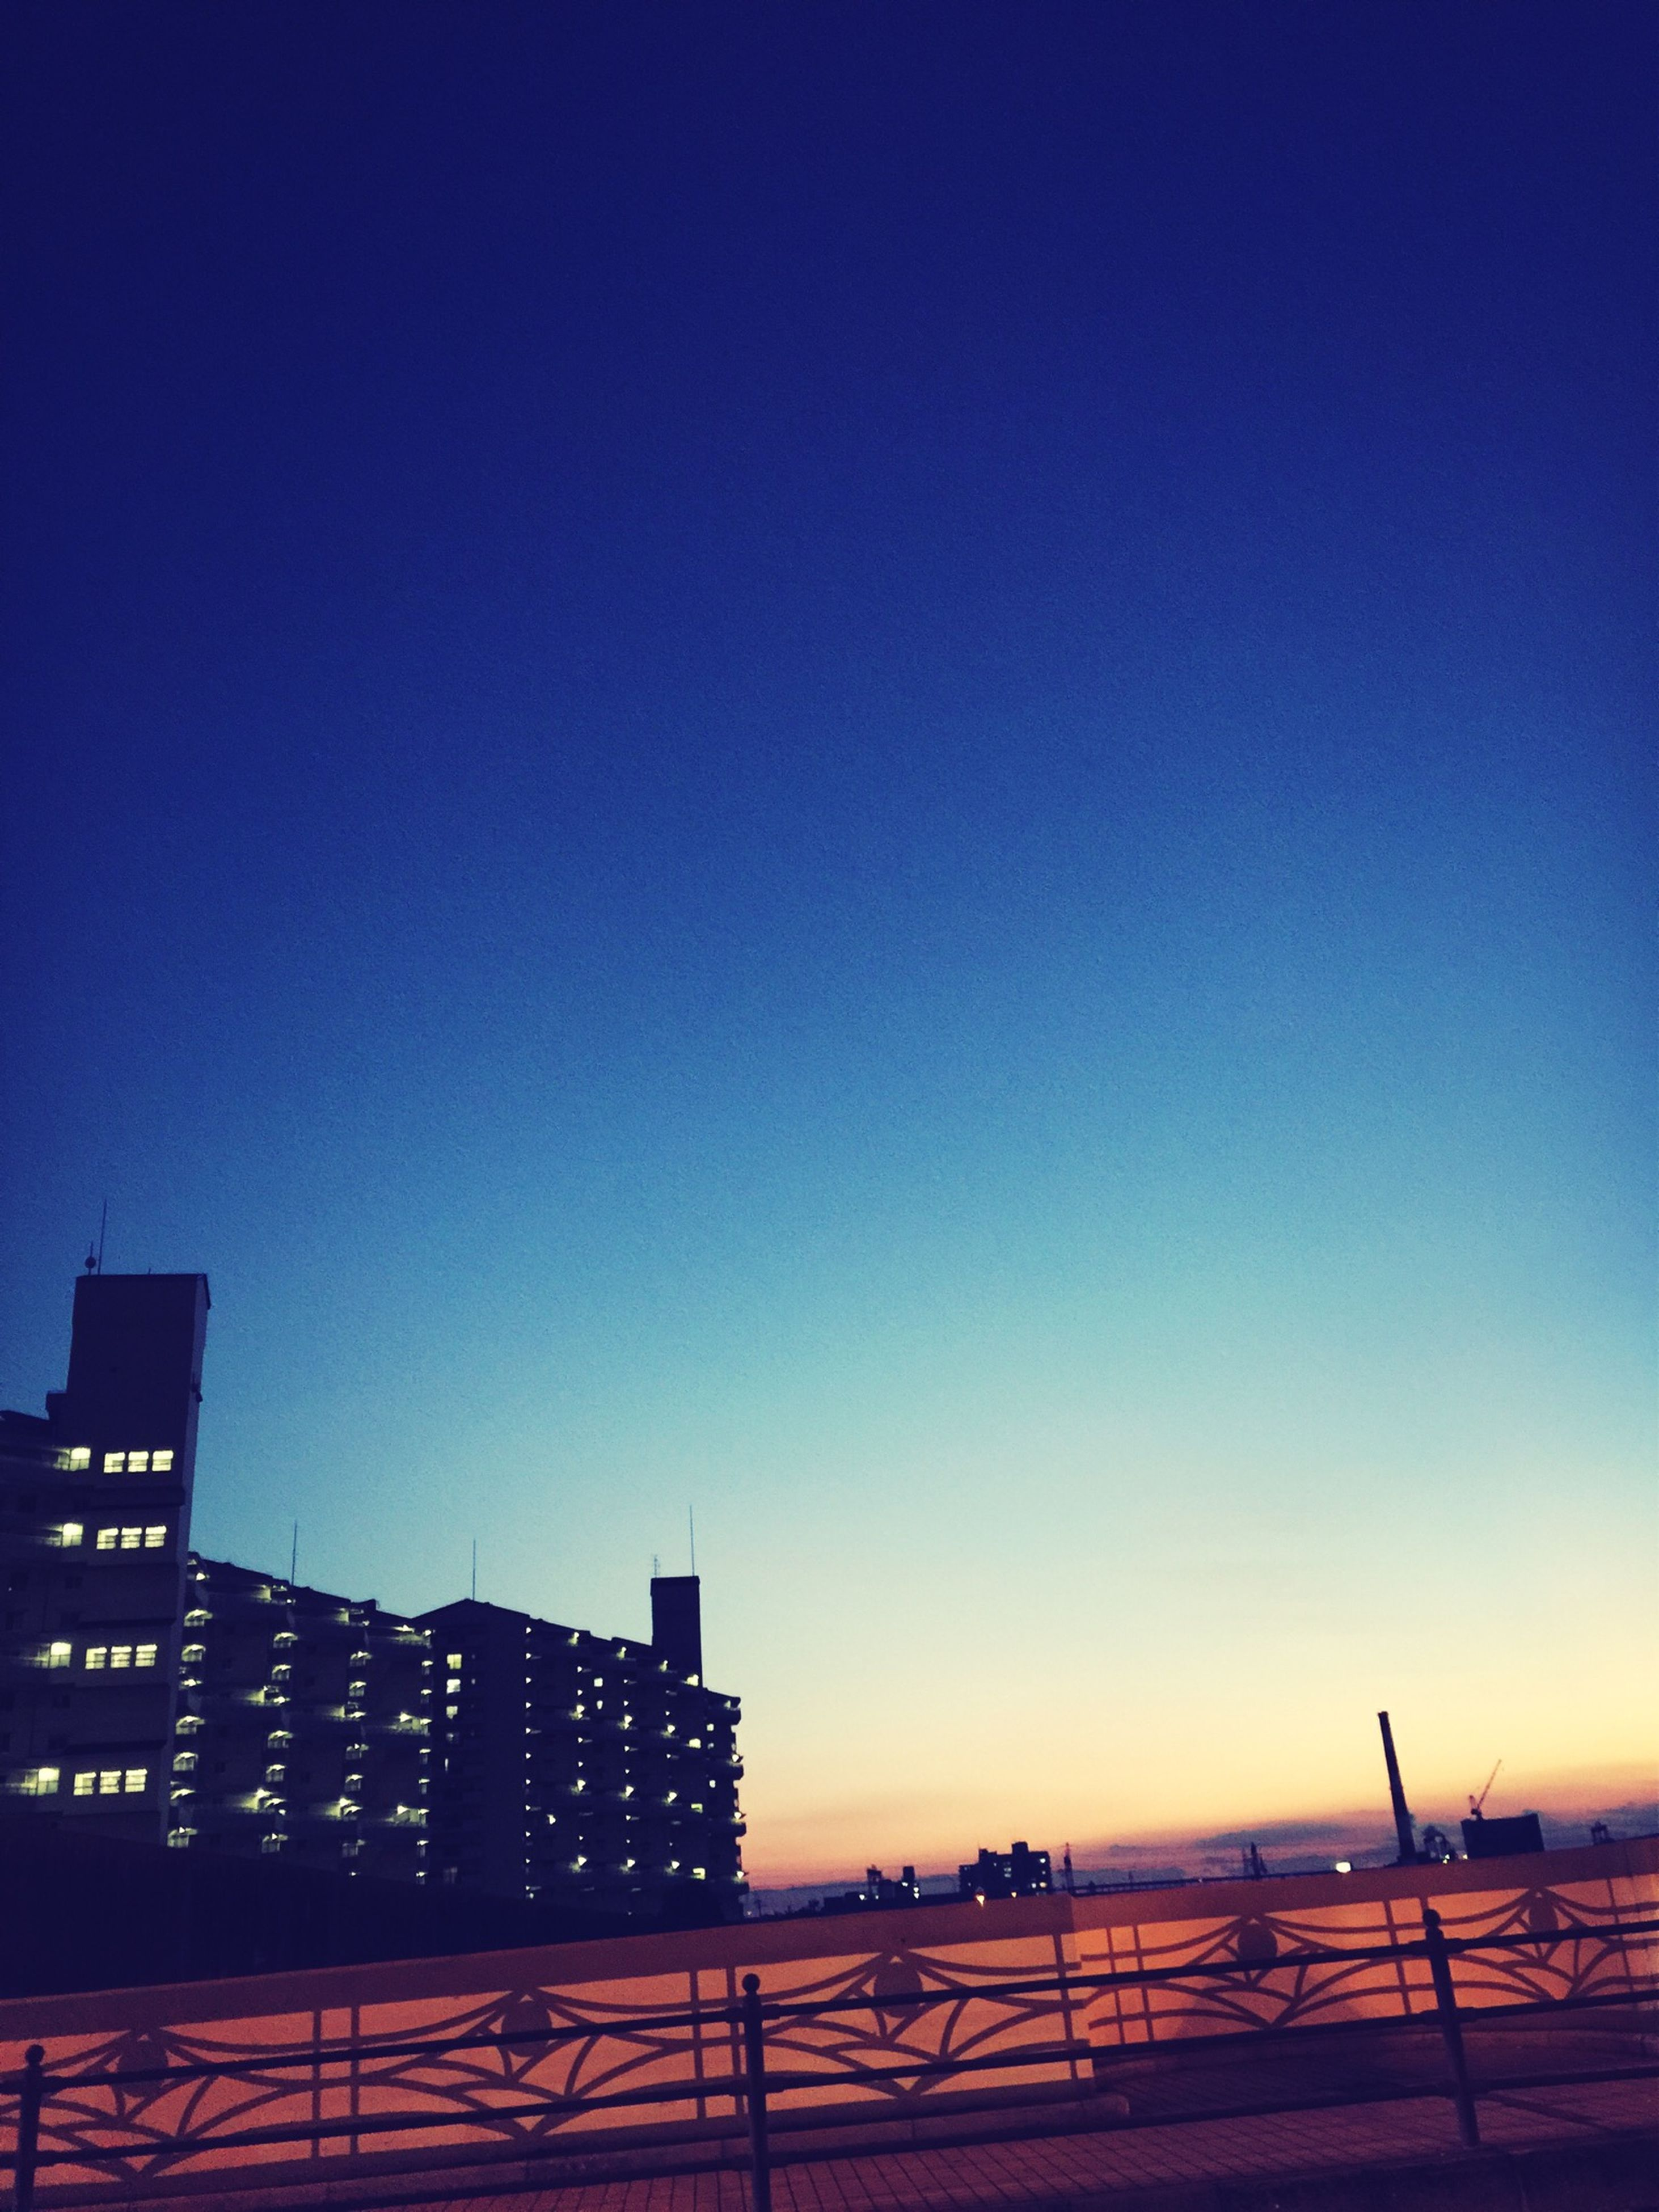 clear sky, copy space, architecture, built structure, building exterior, blue, sunset, silhouette, city, dusk, outdoors, low angle view, no people, building, development, sunlight, railing, sky, industry, connection